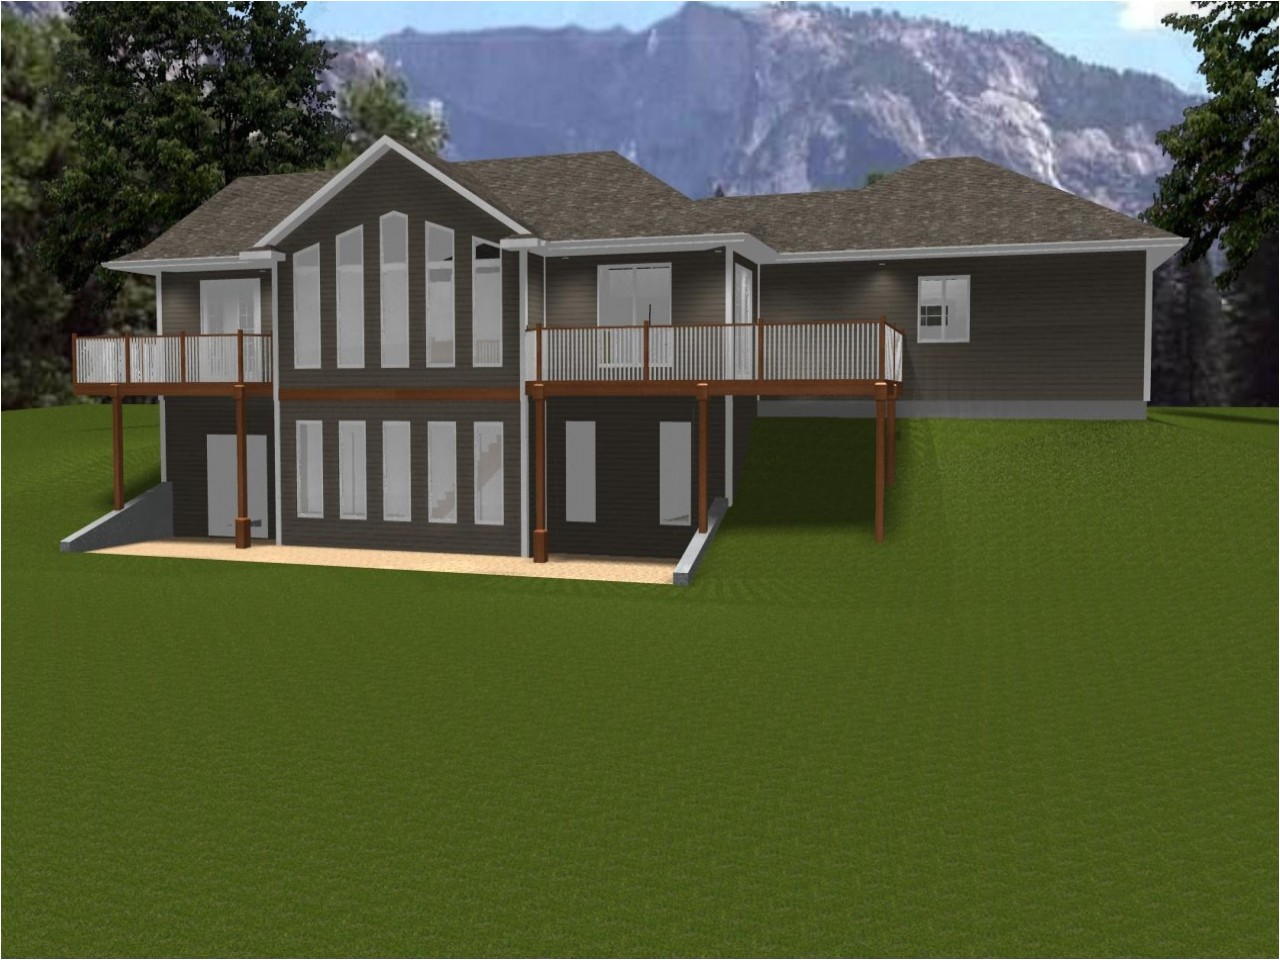 Walkout Ranch Home Plans Ranch House Plans with Walkout Basement Ranch House Plans